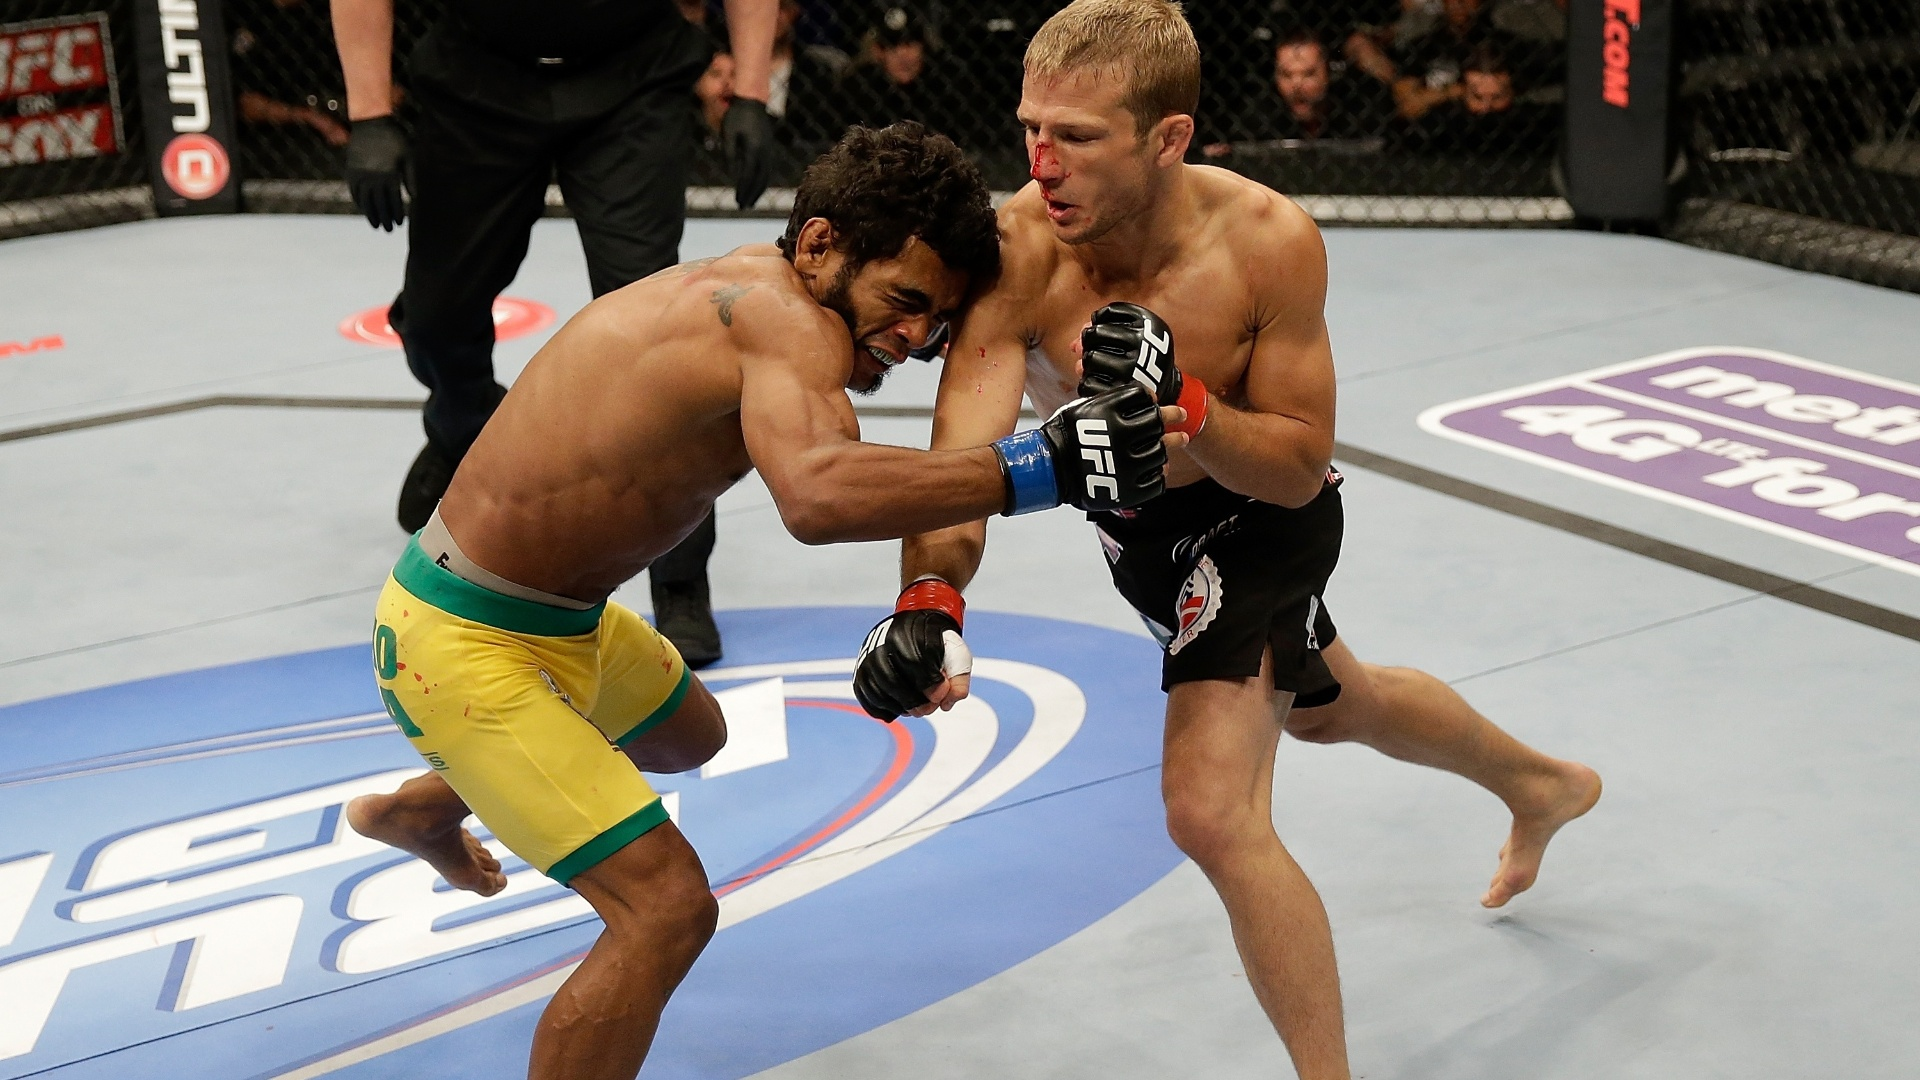 20.abr.2013 - O brasileiro Wolverine foi nocauteado por T.J. Dillashaw ainda no primeiro round da disputa do UFC on Fox. Essa foi a segunda luta dele no peso galo. Antes, ele atuava no peso pena